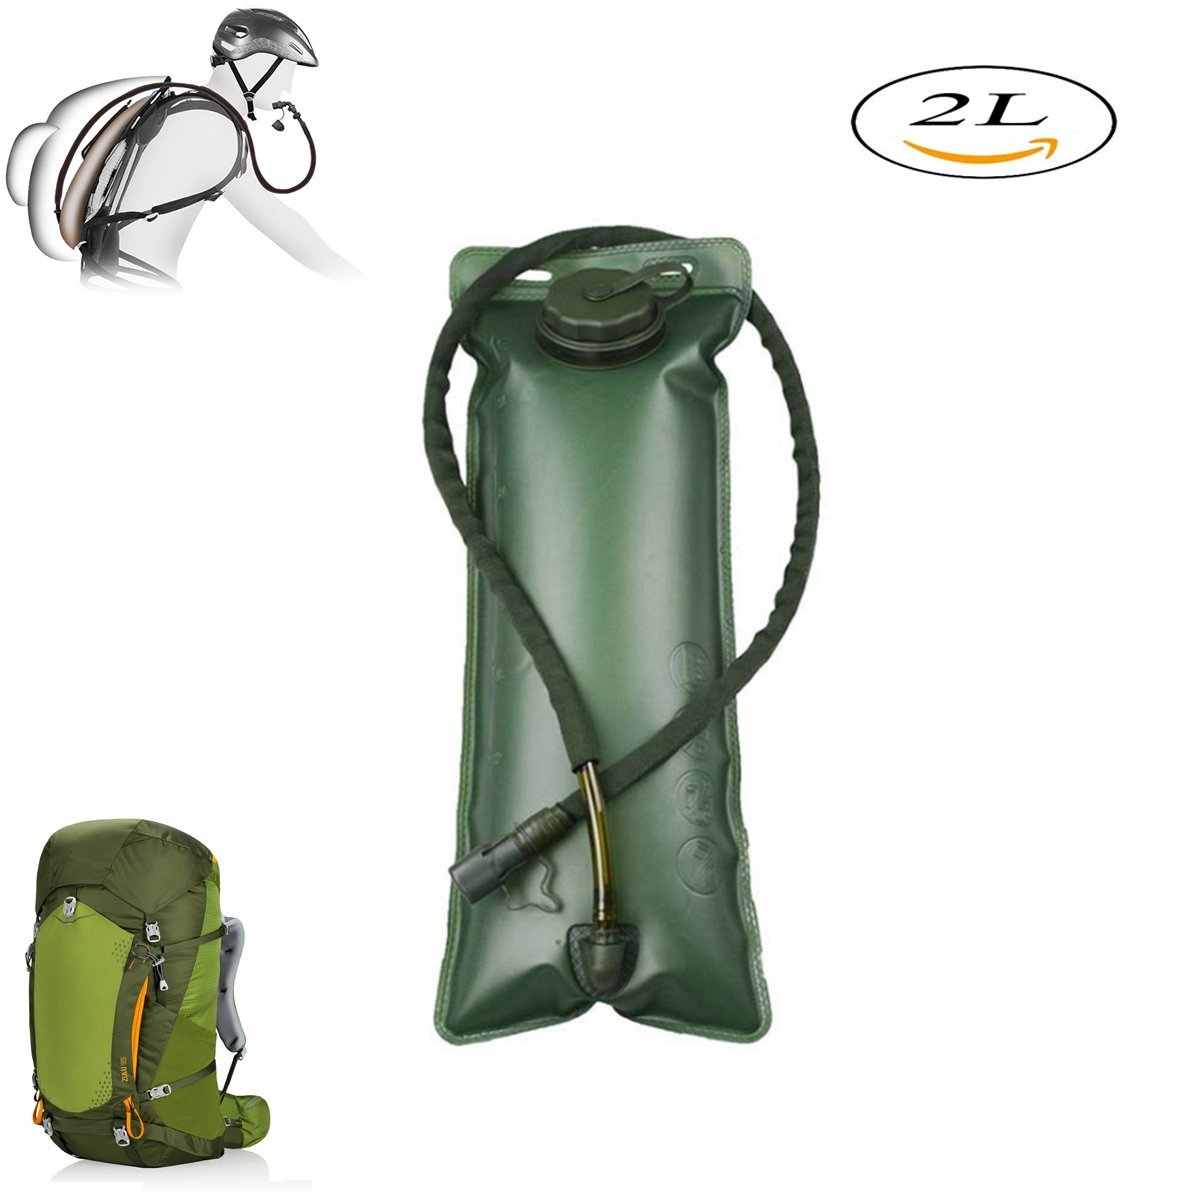 55fe495e2d Get Quotations · BOOU Hydration Bladder 2 Liter 3 Liter Water Reservoir for Water  Backpack Suitable for All kinds